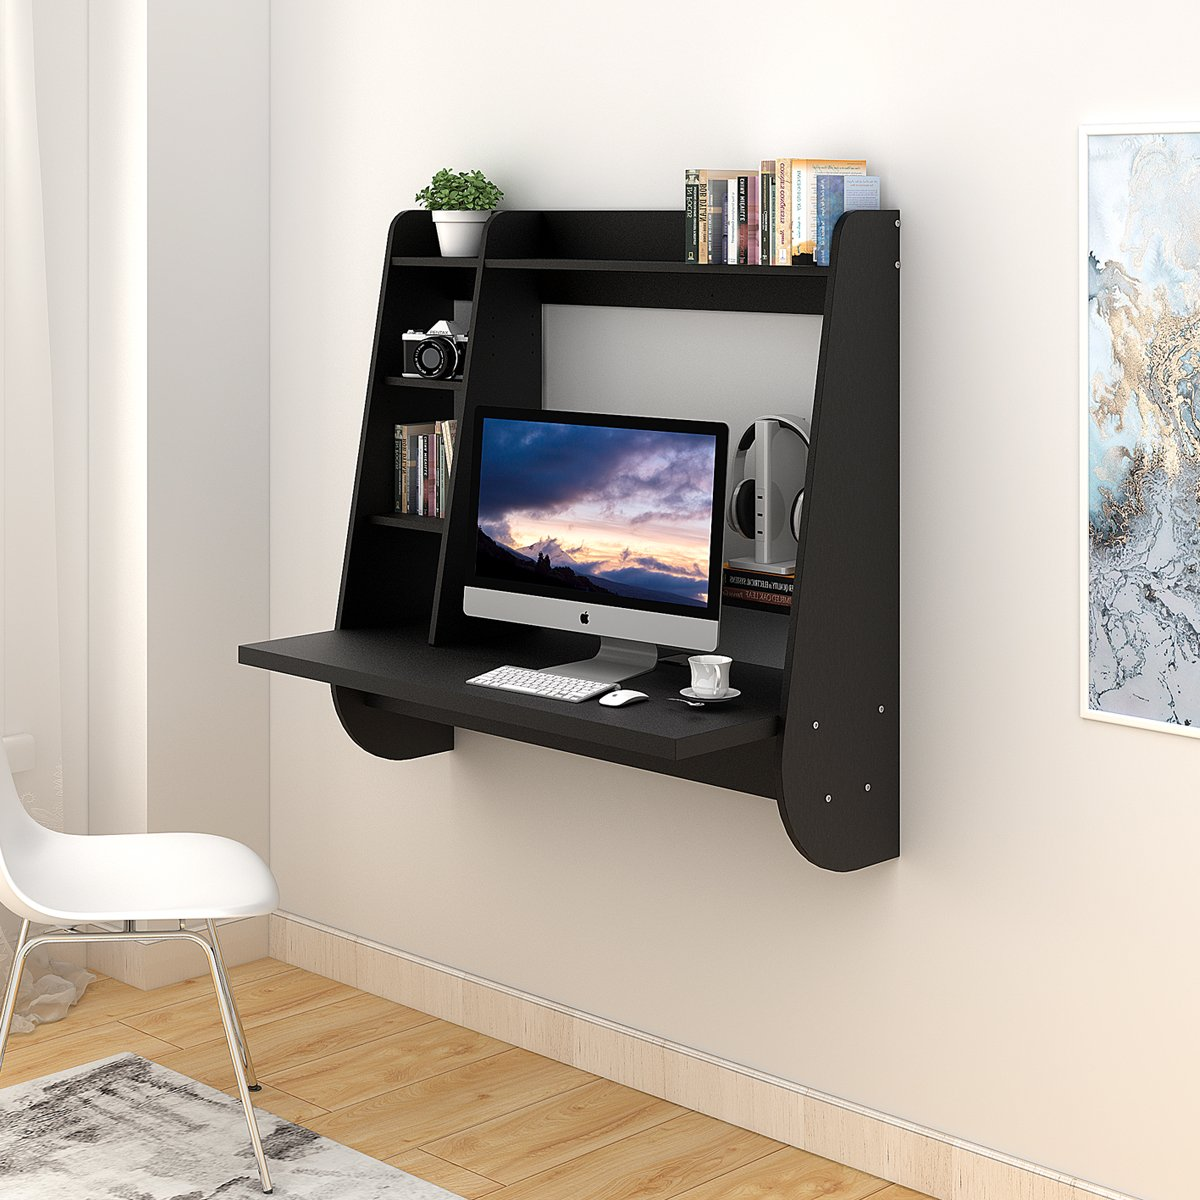 Wall Mounted Floating Desk with Storage (Black)